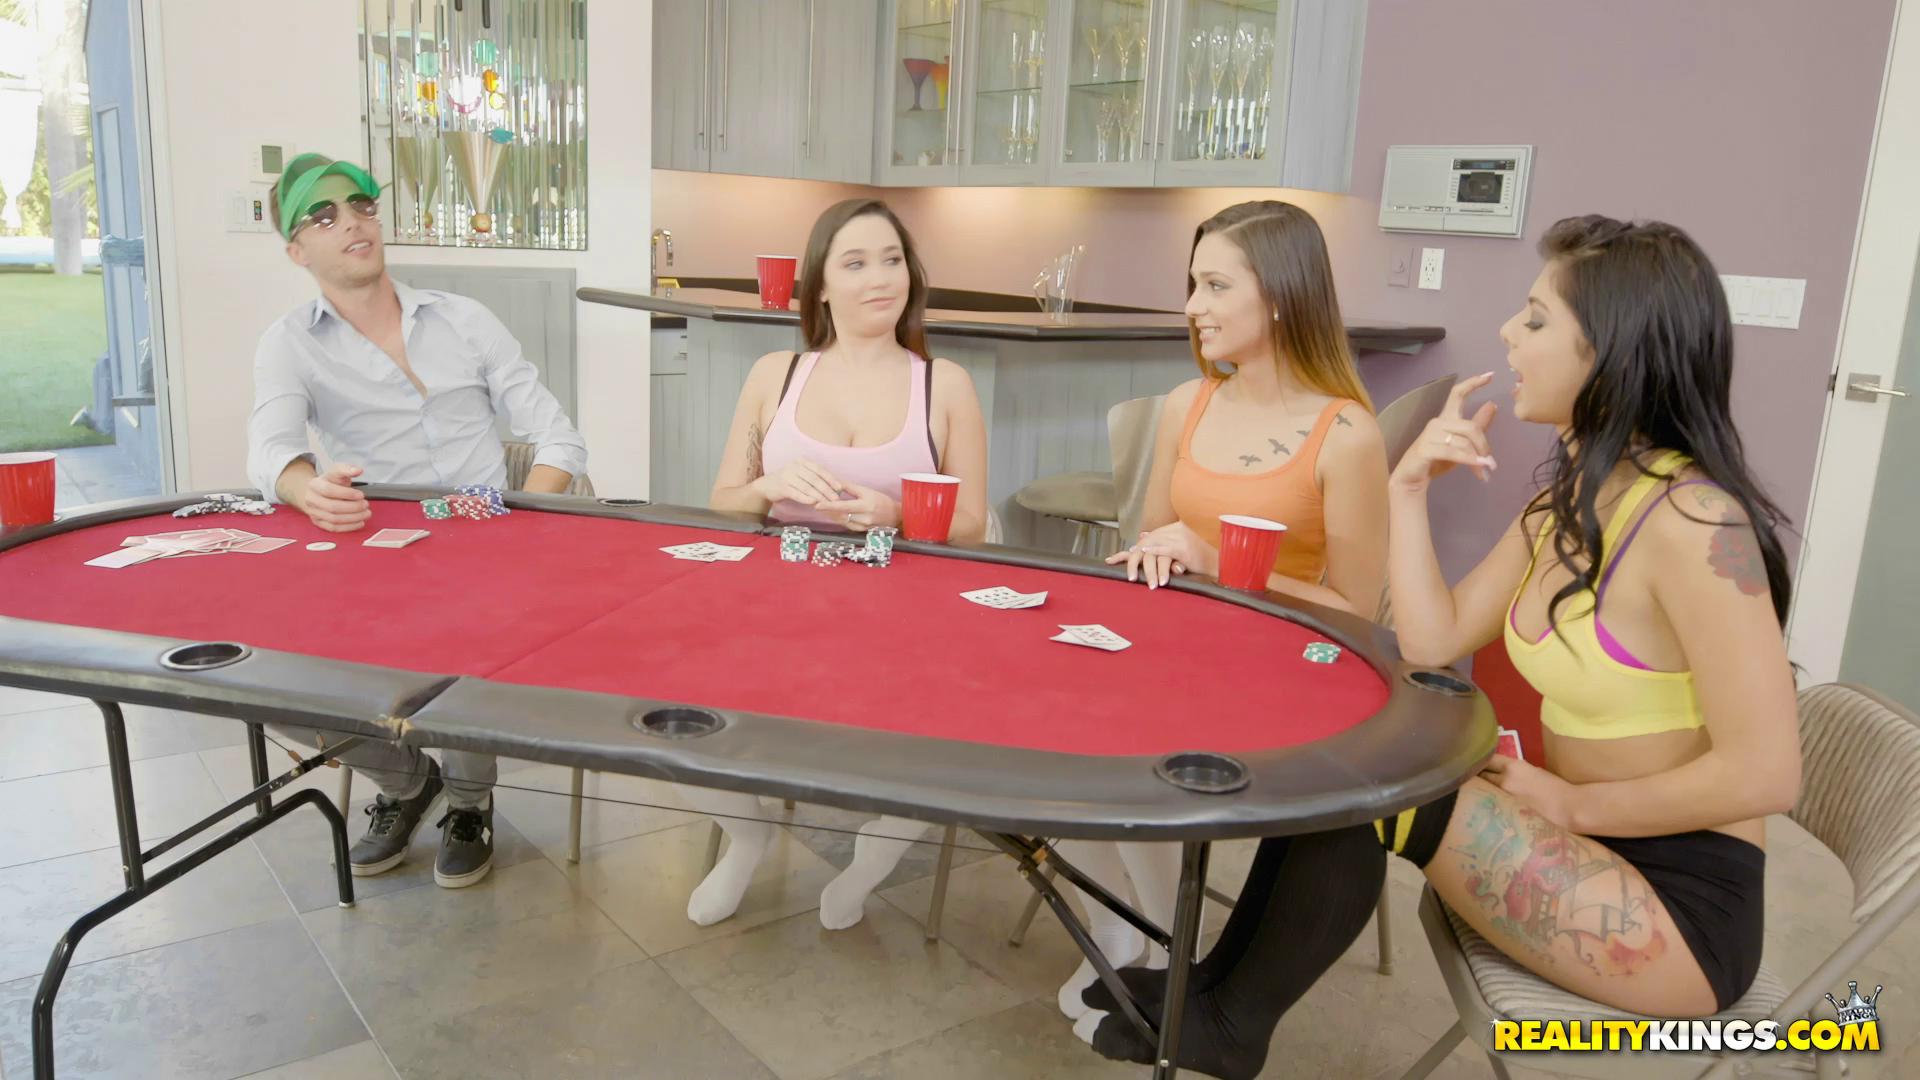 MoneyTalks – Gina Valentina Karlee Grey And Jaye Summers Taking All Bets